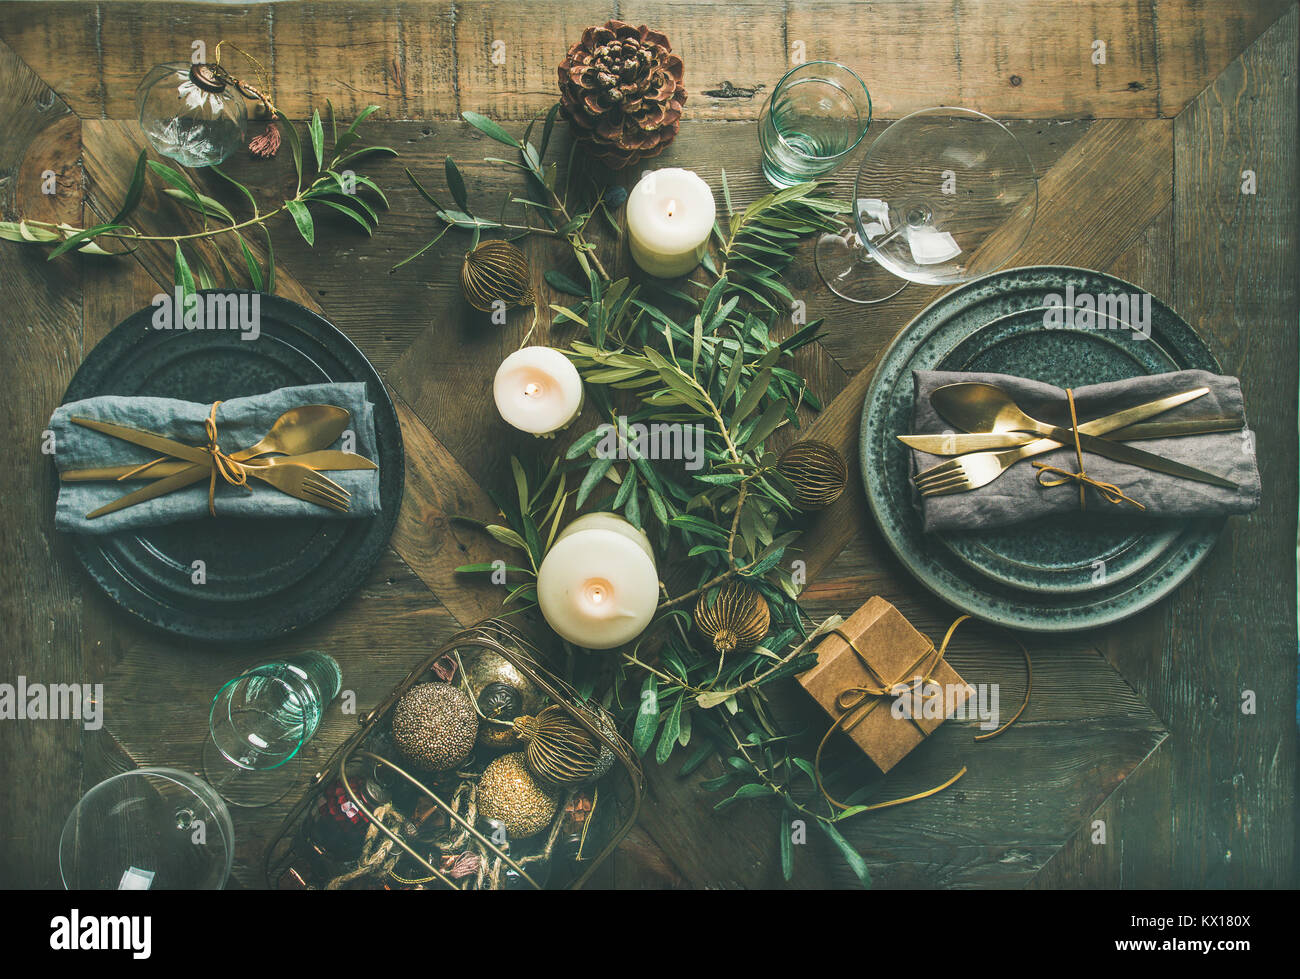 Christmas or New Years eve celebration party table setting - Stock Image